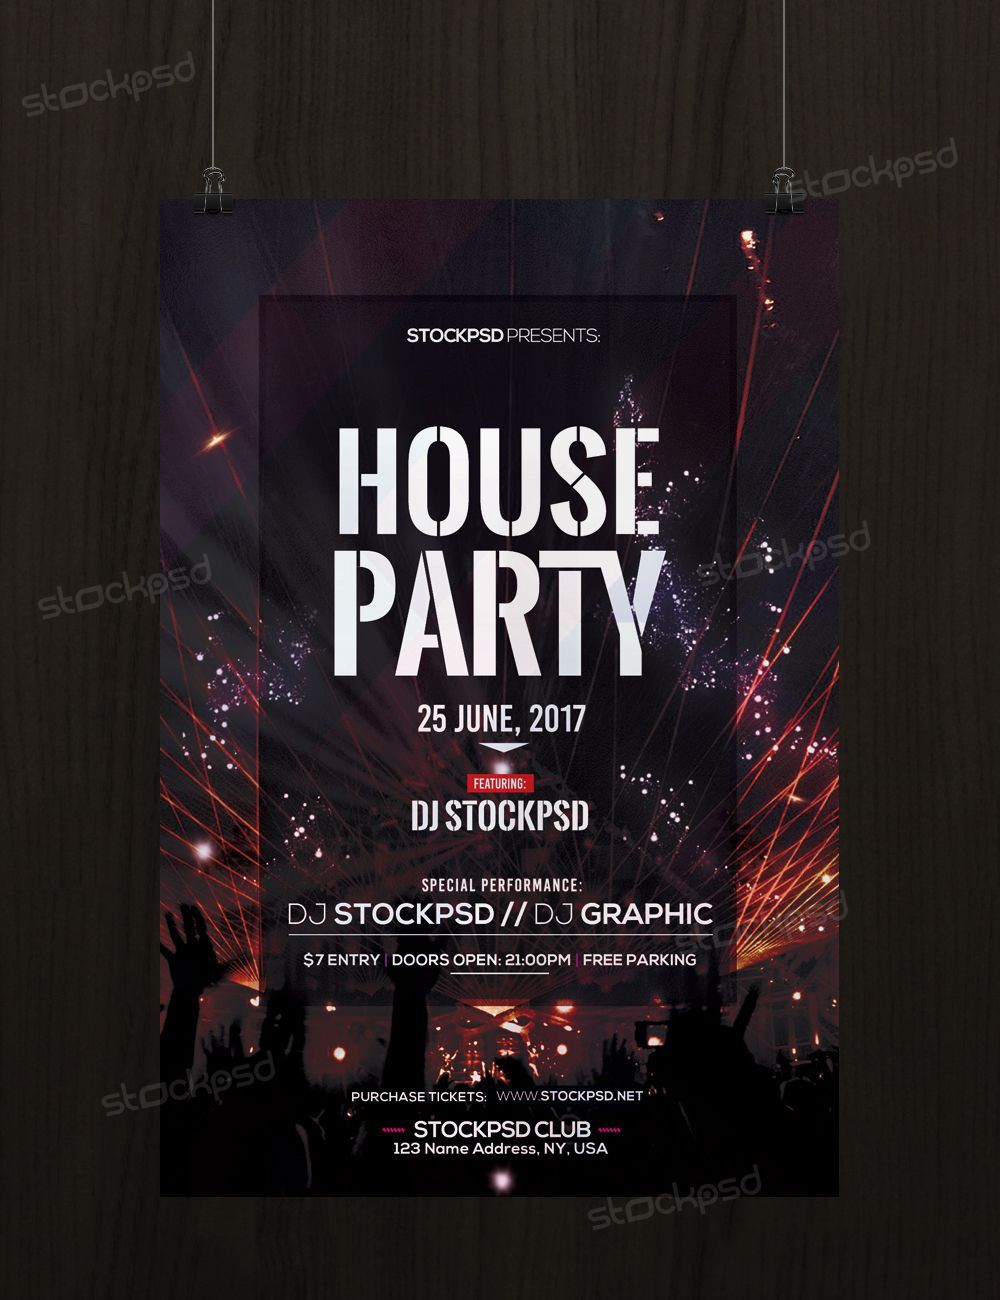 002 Excellent Free Psd Party Flyer Template Download Idea  - Neon Glow RaveFull